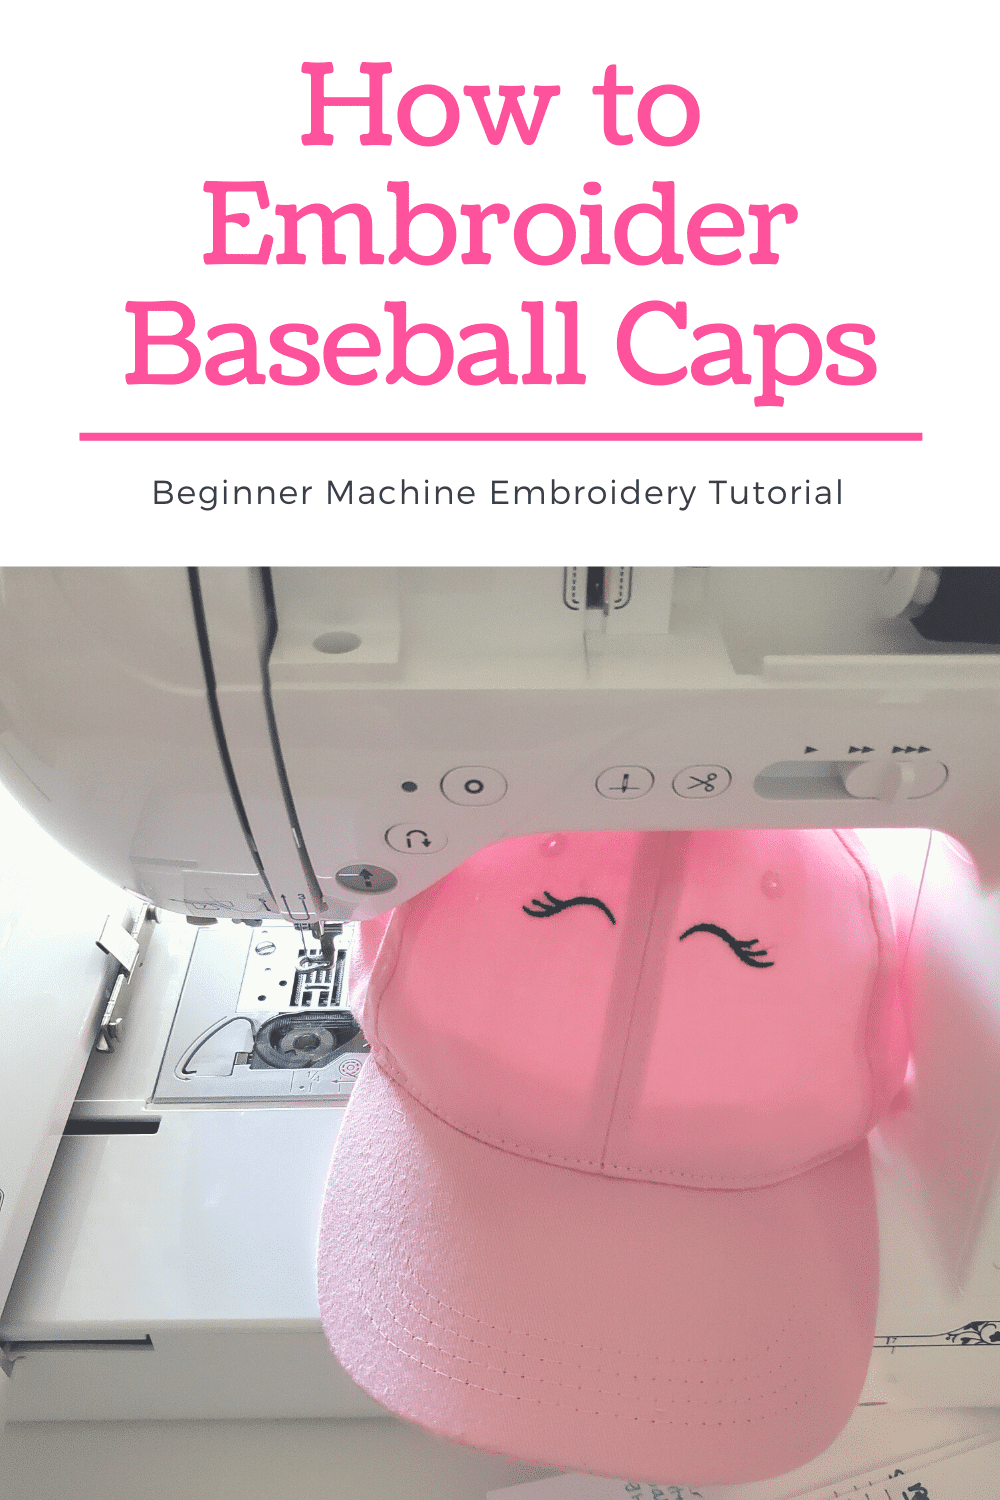 How to Machine Embroider Hats